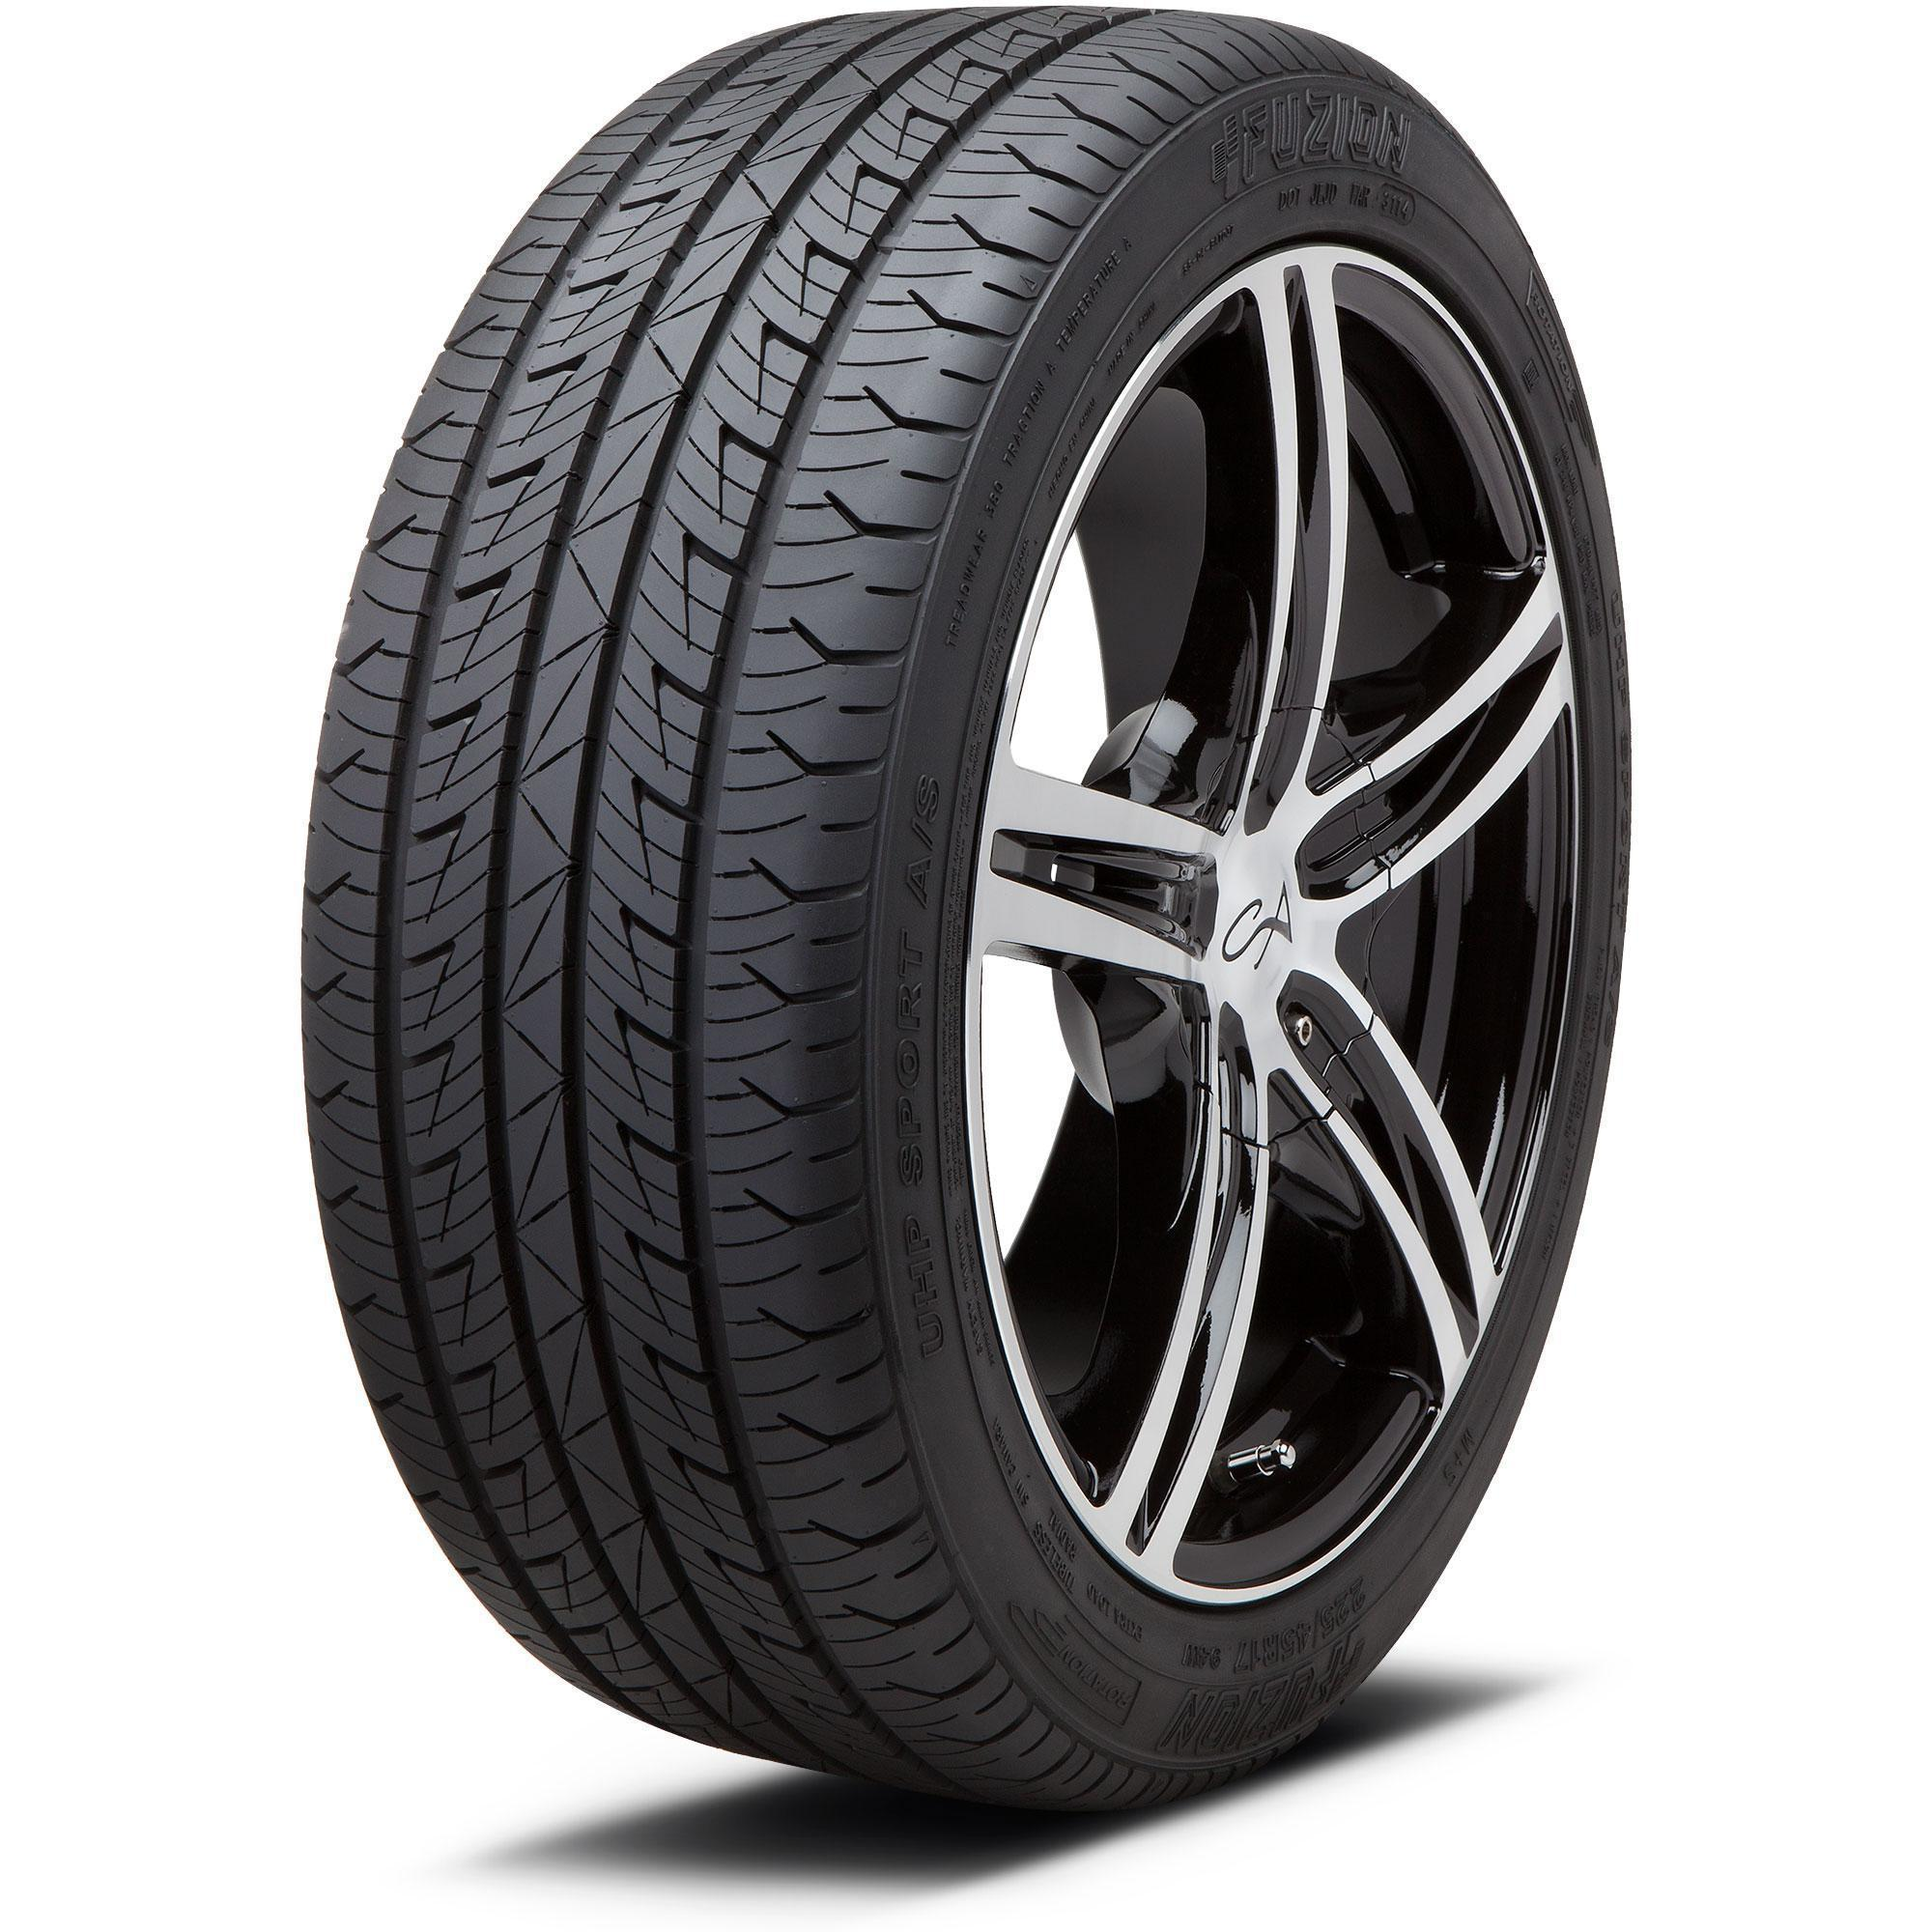 Fuzion Uhp Sport A S Tirebuyer